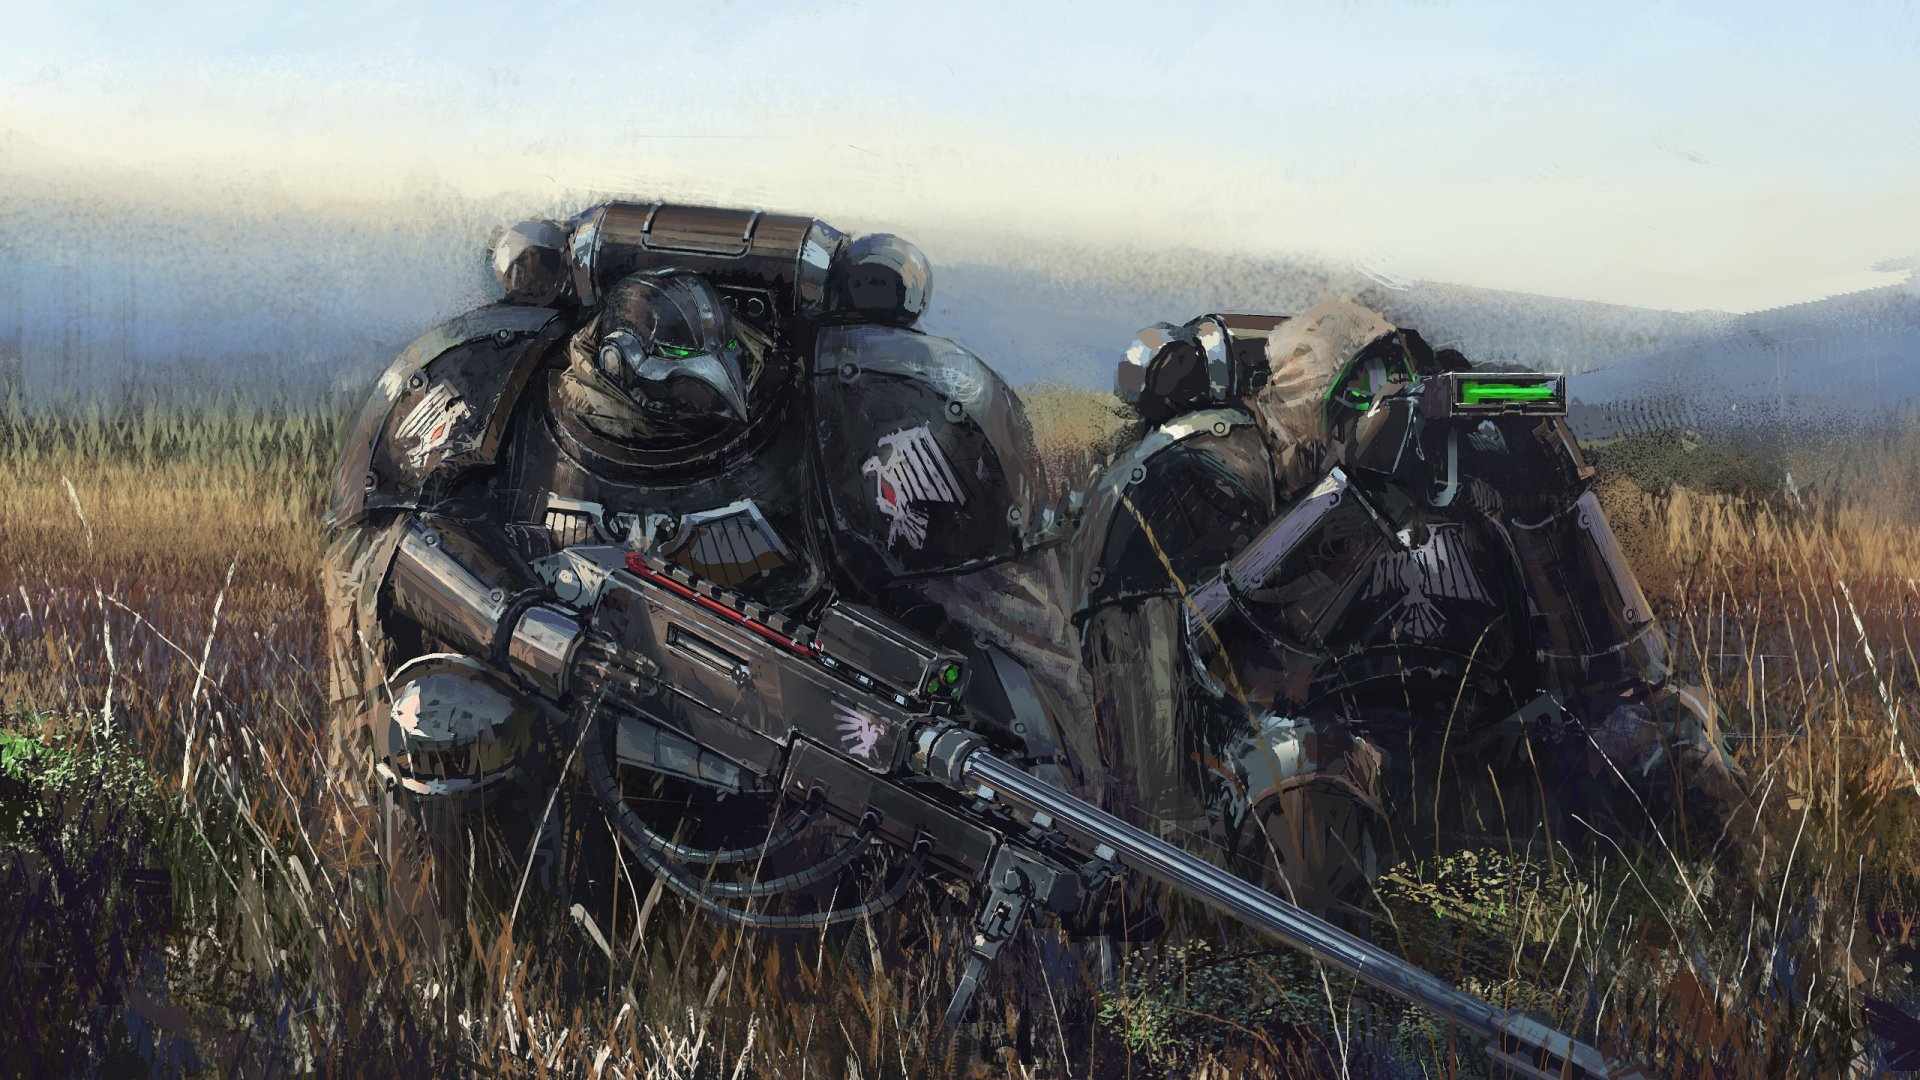 Video Game - Warhammer 40K  Soldier Armor Sniper Sniper Rifle Warrior Wallpaper